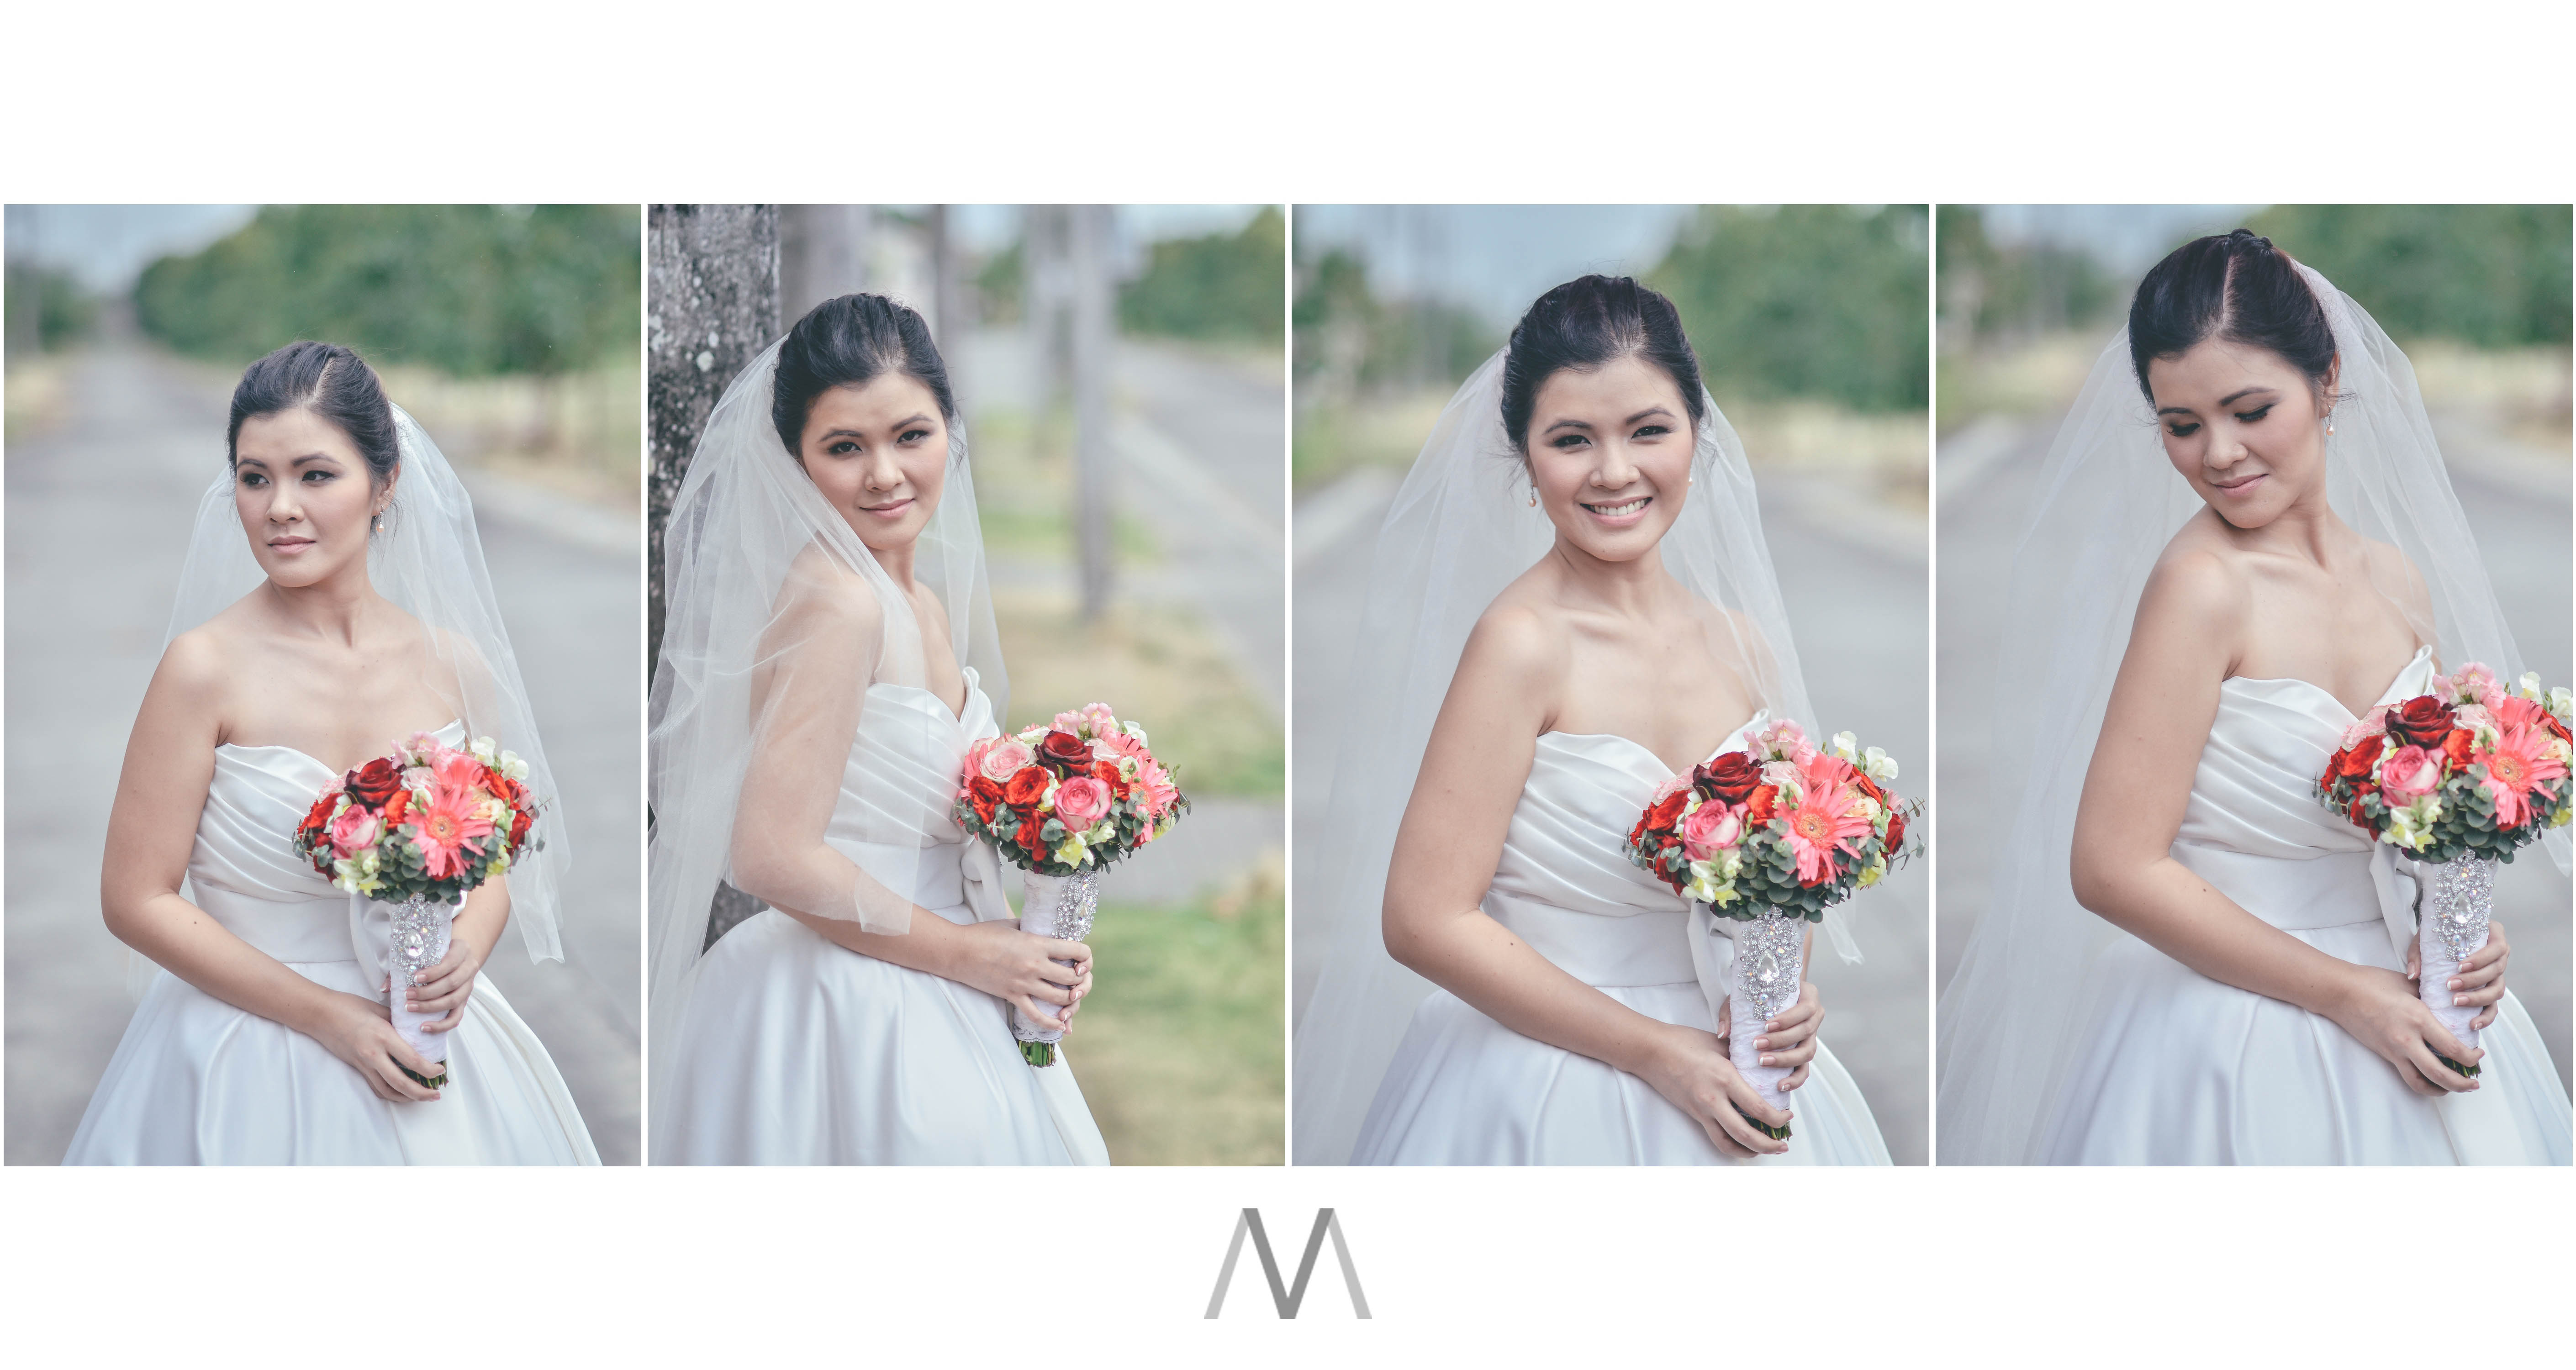 Nybie Ng | Professional Make-up Artist in the Philippines